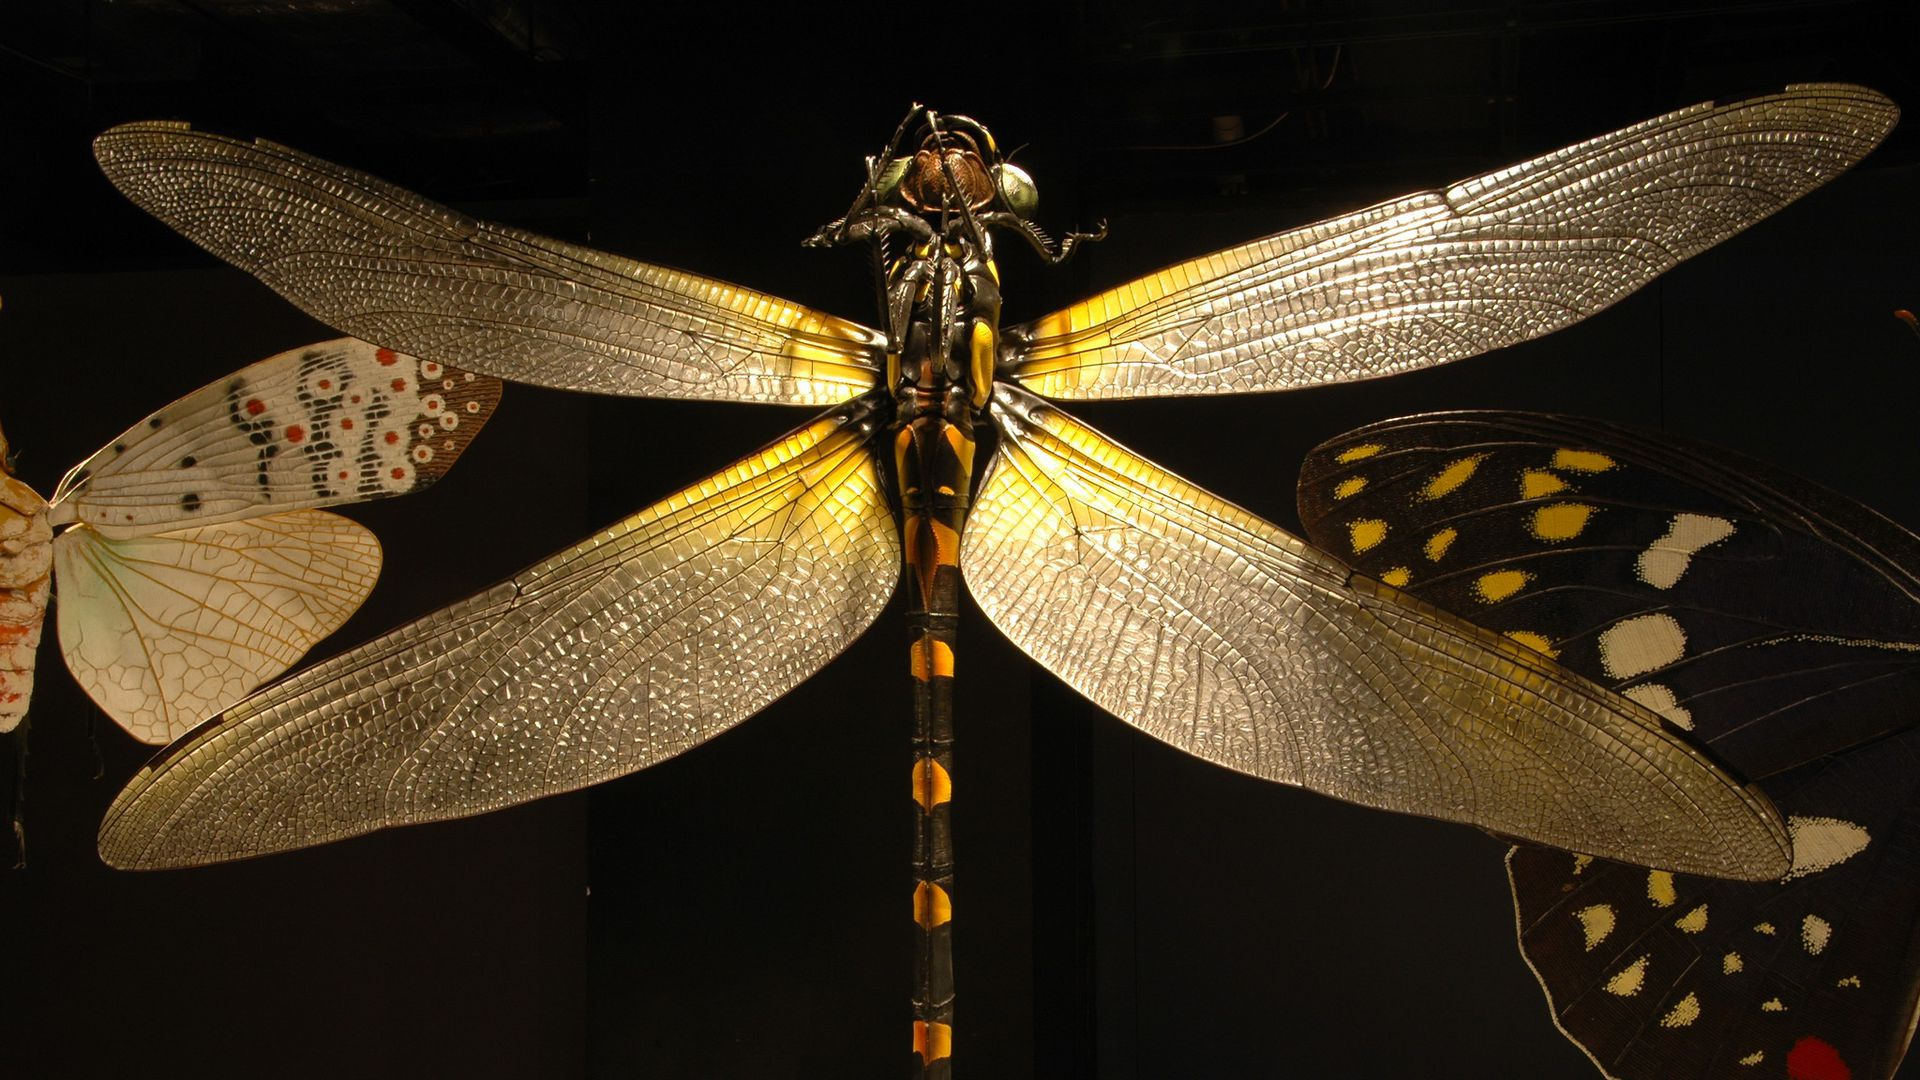 A sculpture of a dragonfly.